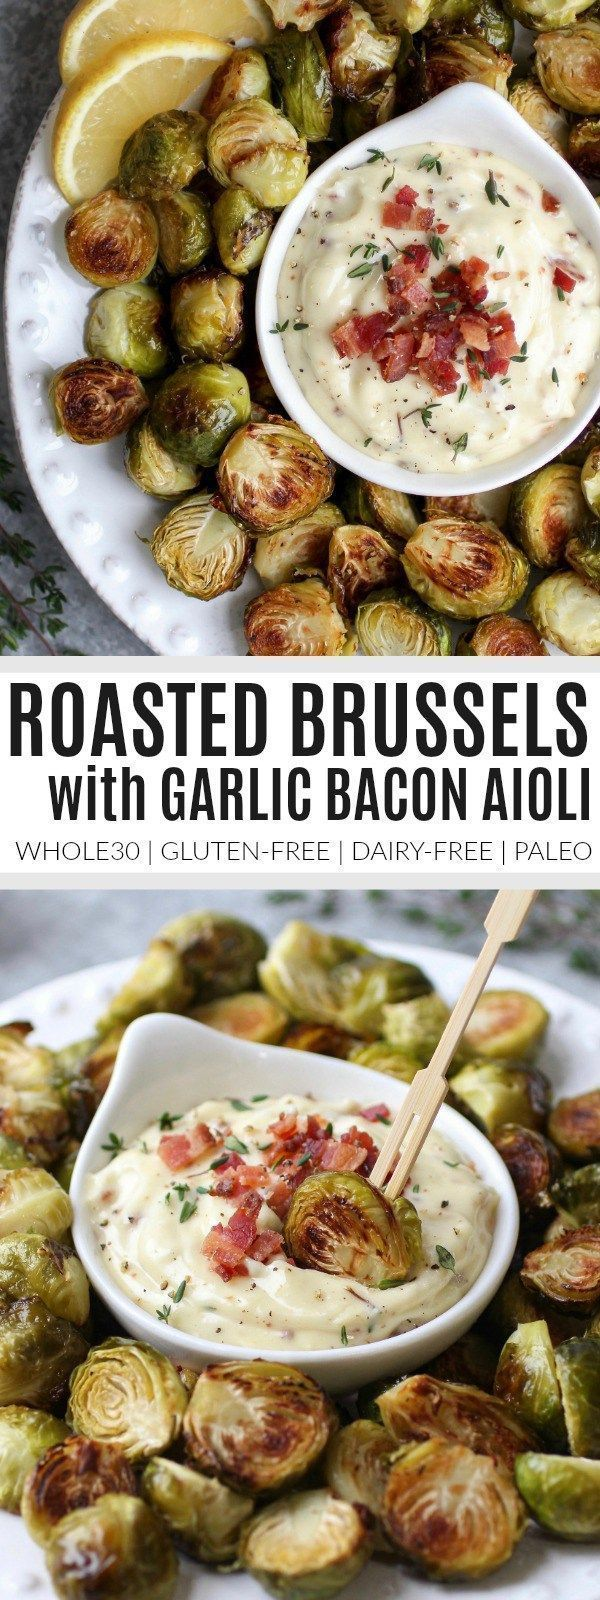 Roasted Brussels Sprouts with Bacon Aioli | healthy brussels sprouts recipes | homemade brussels sprouts | how to cook brussels sprouts | healthy side dishes | healthy appetizer recipes | whole30 appetizer recipes | gluten-free appetizers | dairy-free appetizers | paleo appetizers || The Real Food Dietitians #whole30appetizers~ a 1/3 of a cup of mayo for ten servings isn't bad at all. :o)